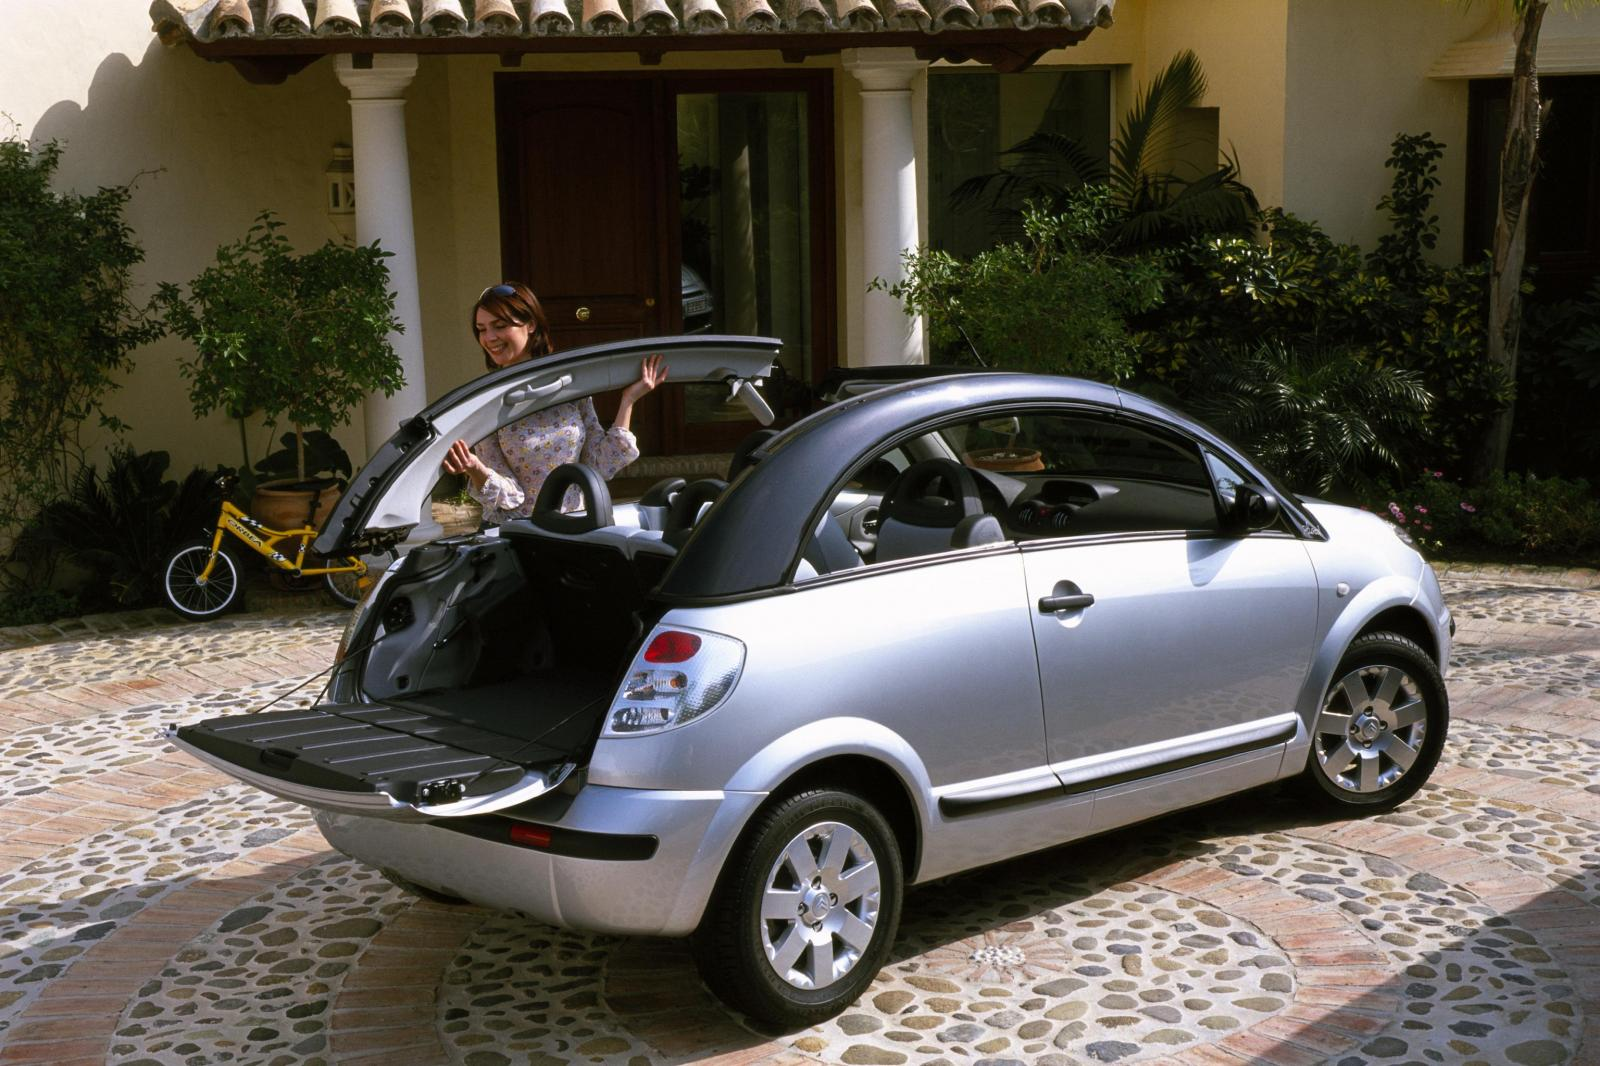 C3 Pluriel 2005 without roof rack